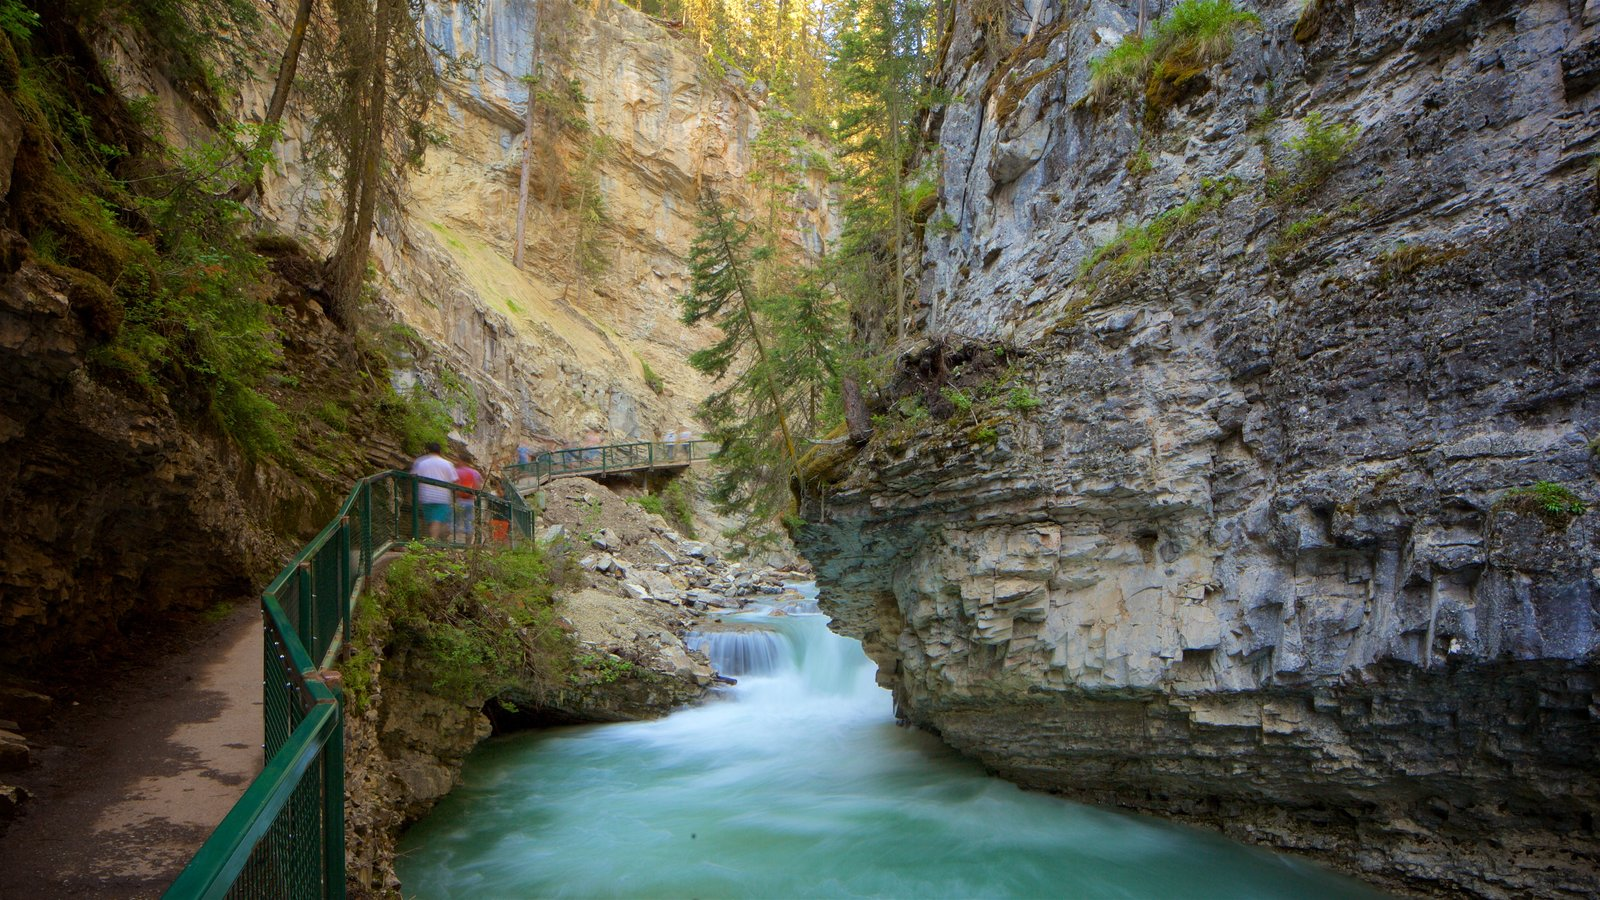 Johnston Canyon featuring a gorge or canyon and a river or creek